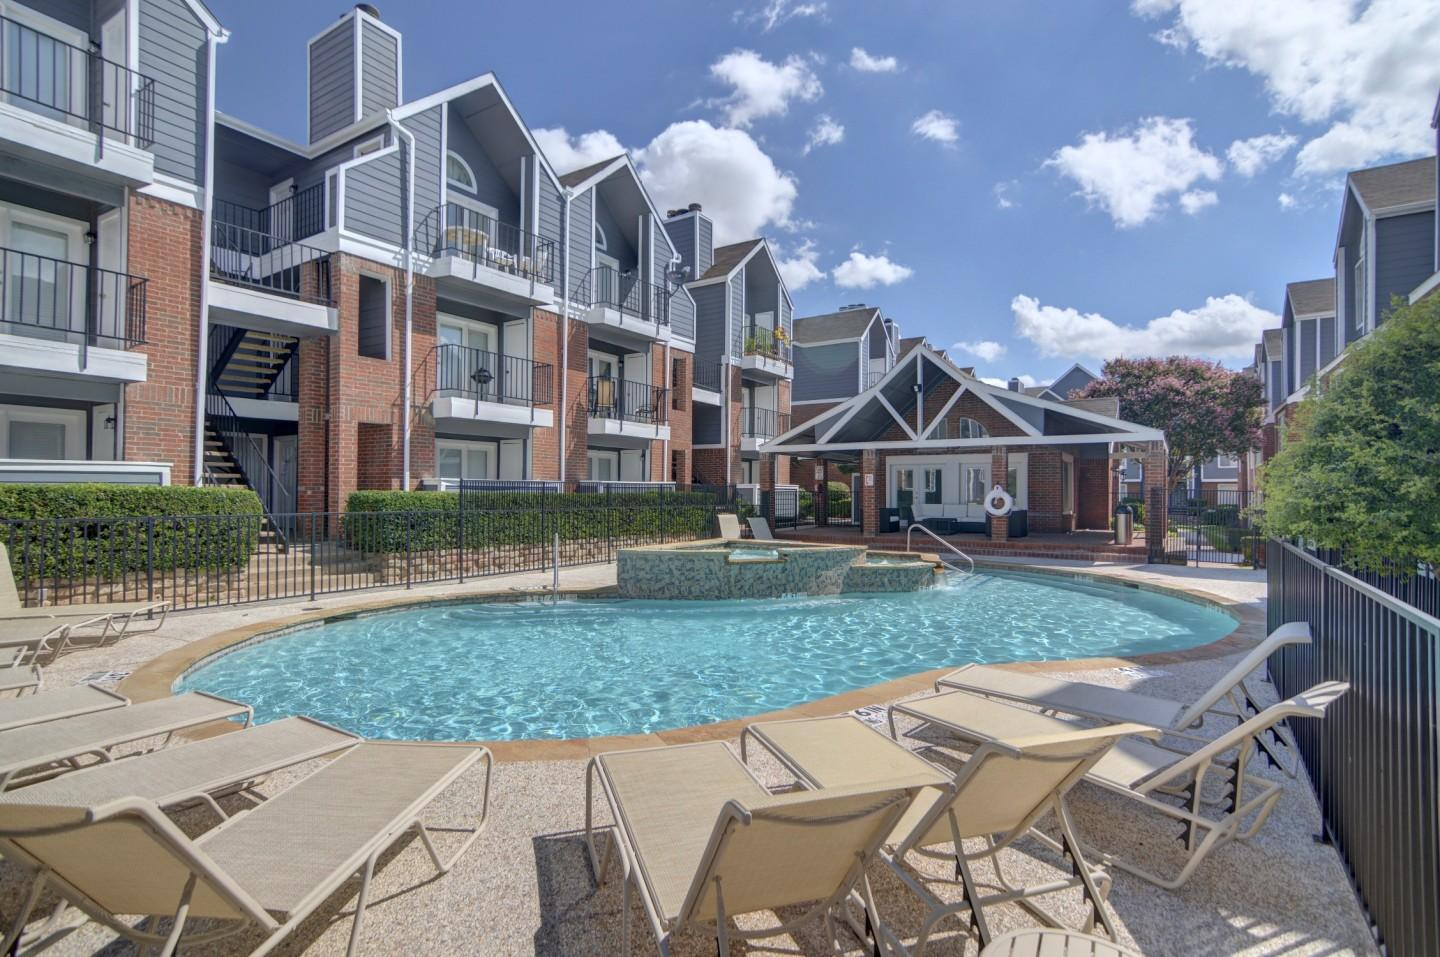 One Bedroom Apartments College Station Tx The Trellis At Lake Highlands Apartments Dallas Tx Walk